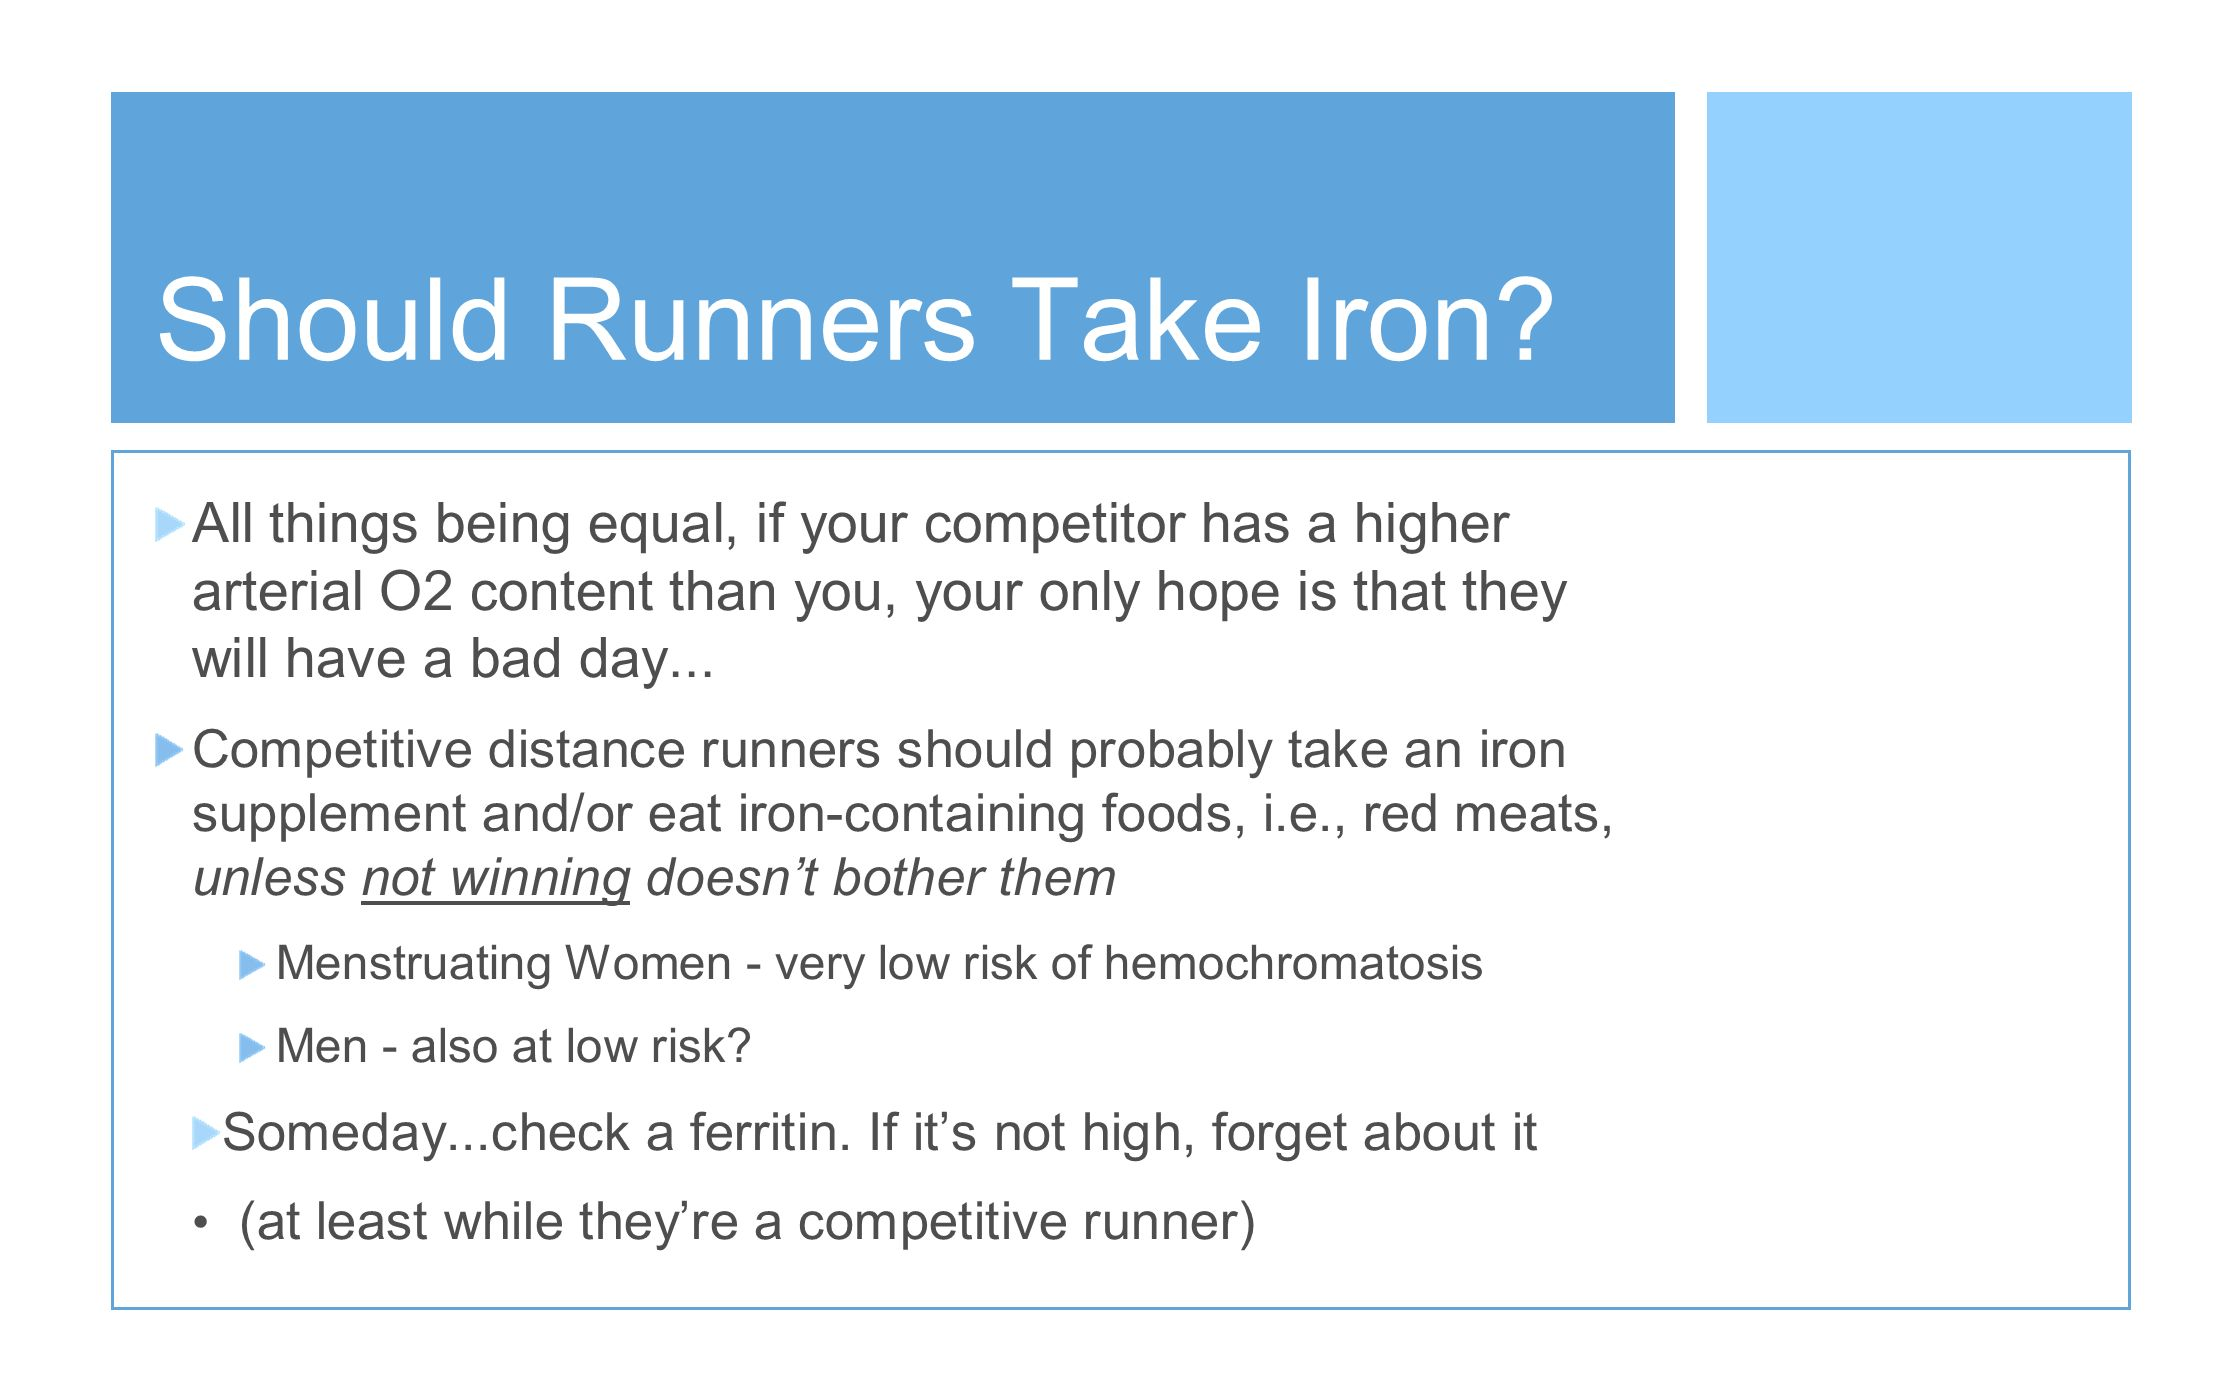 Should Runners Take Iron? All things being equal, if your competitor has a higher arterial O2 content than you, your only hope is that they will have